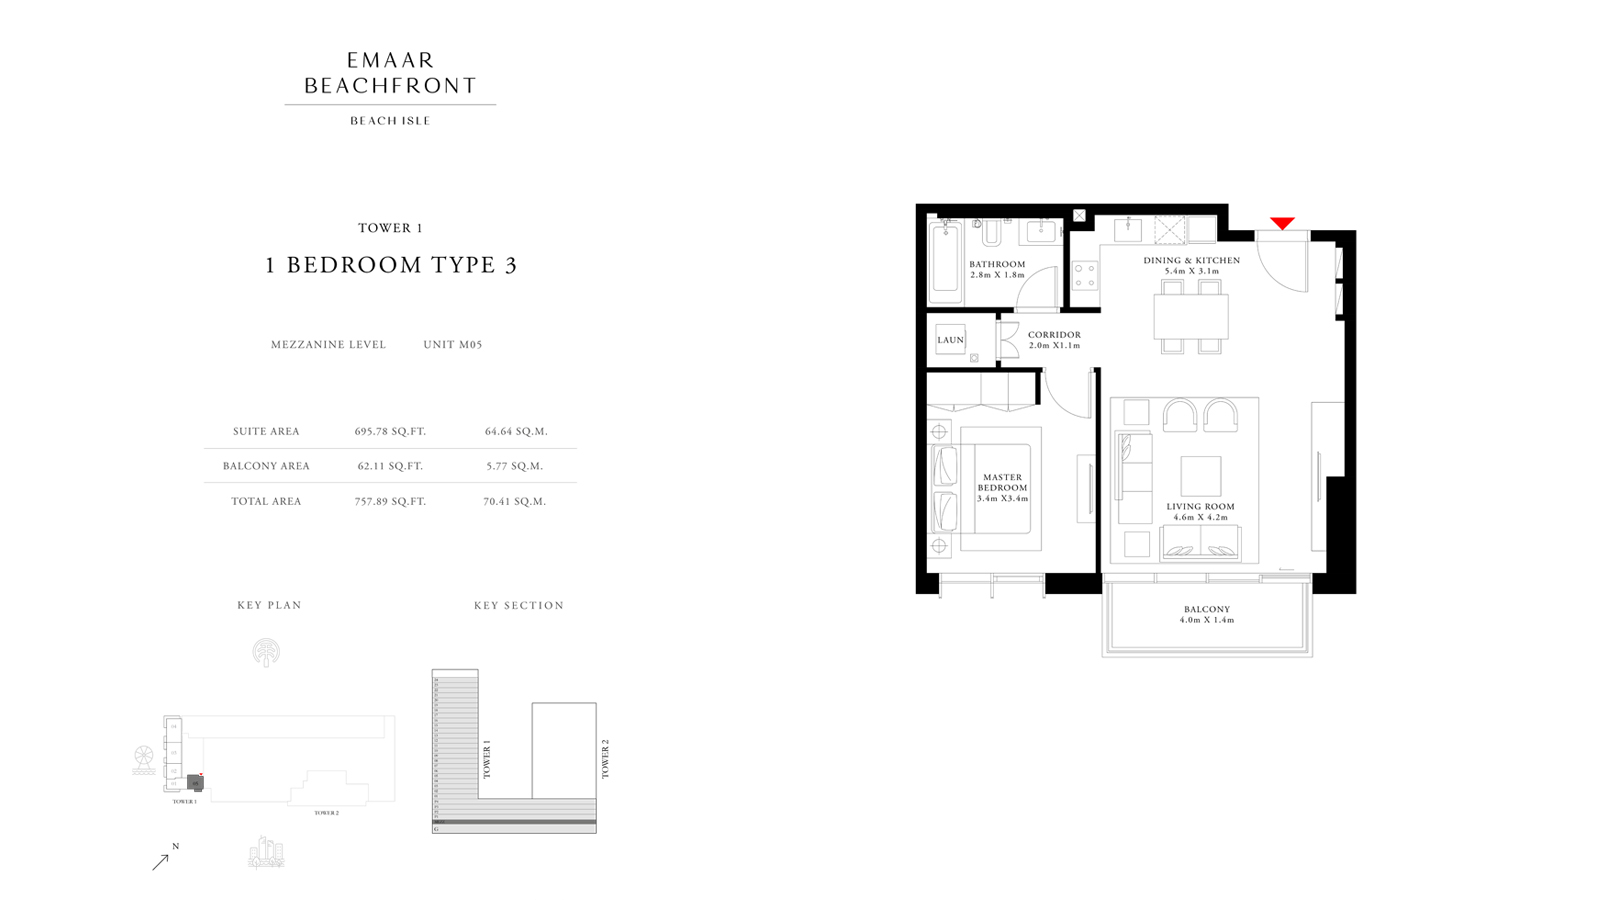 1 Bedroom Type 3 Tower 1, Size 757    sq. ft.